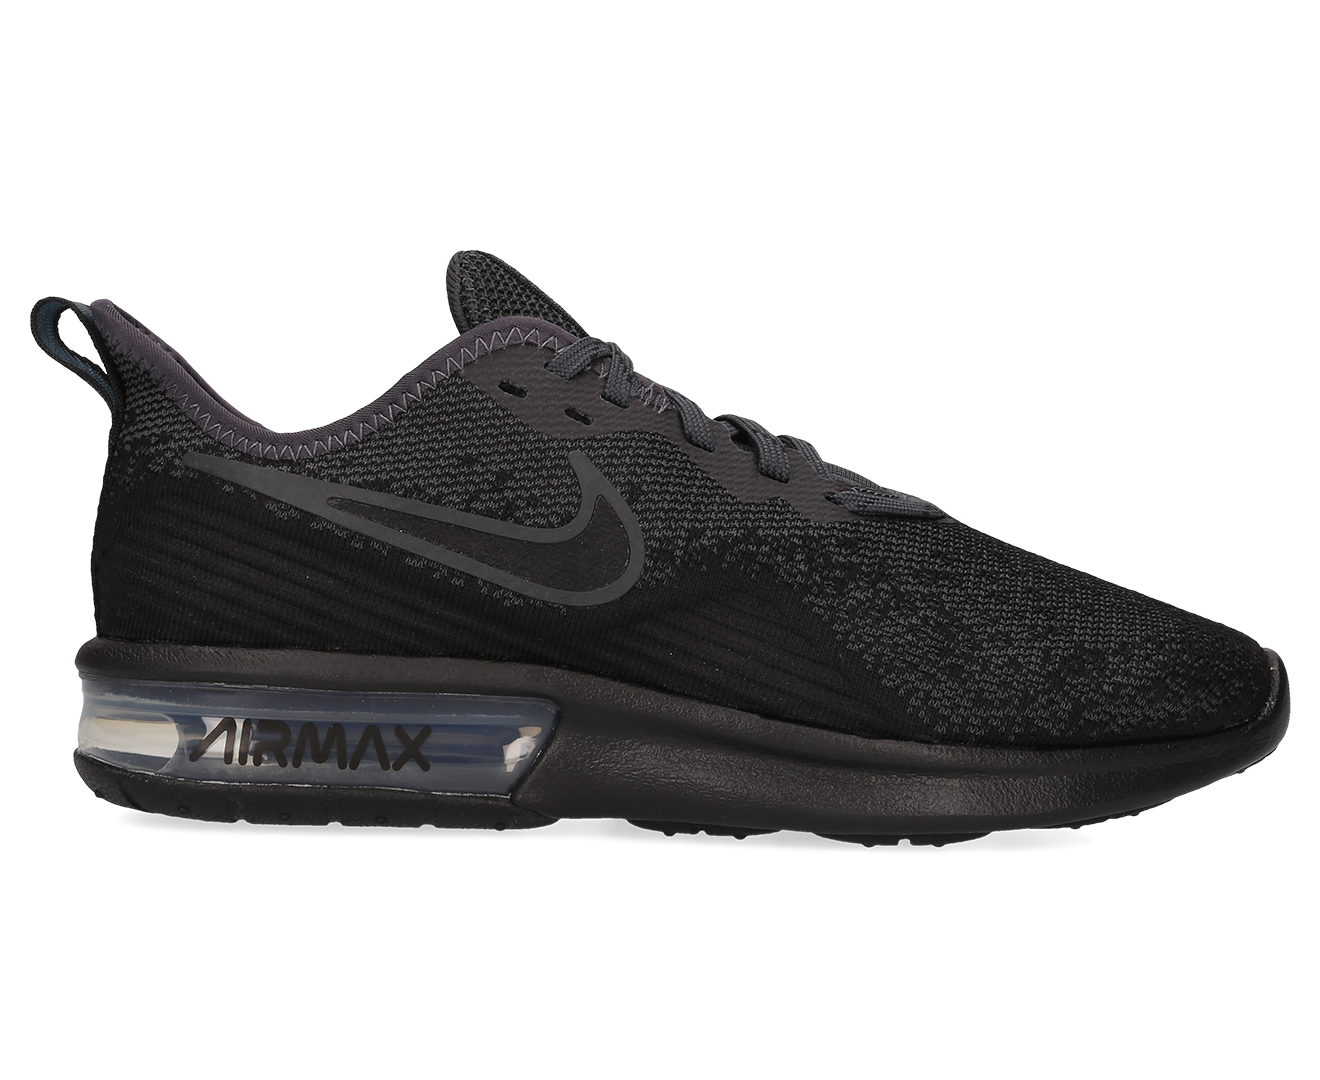 Details about Nike Women's Air Max Sequent 4 Running Sports Shoes BlackBlack Anthracite